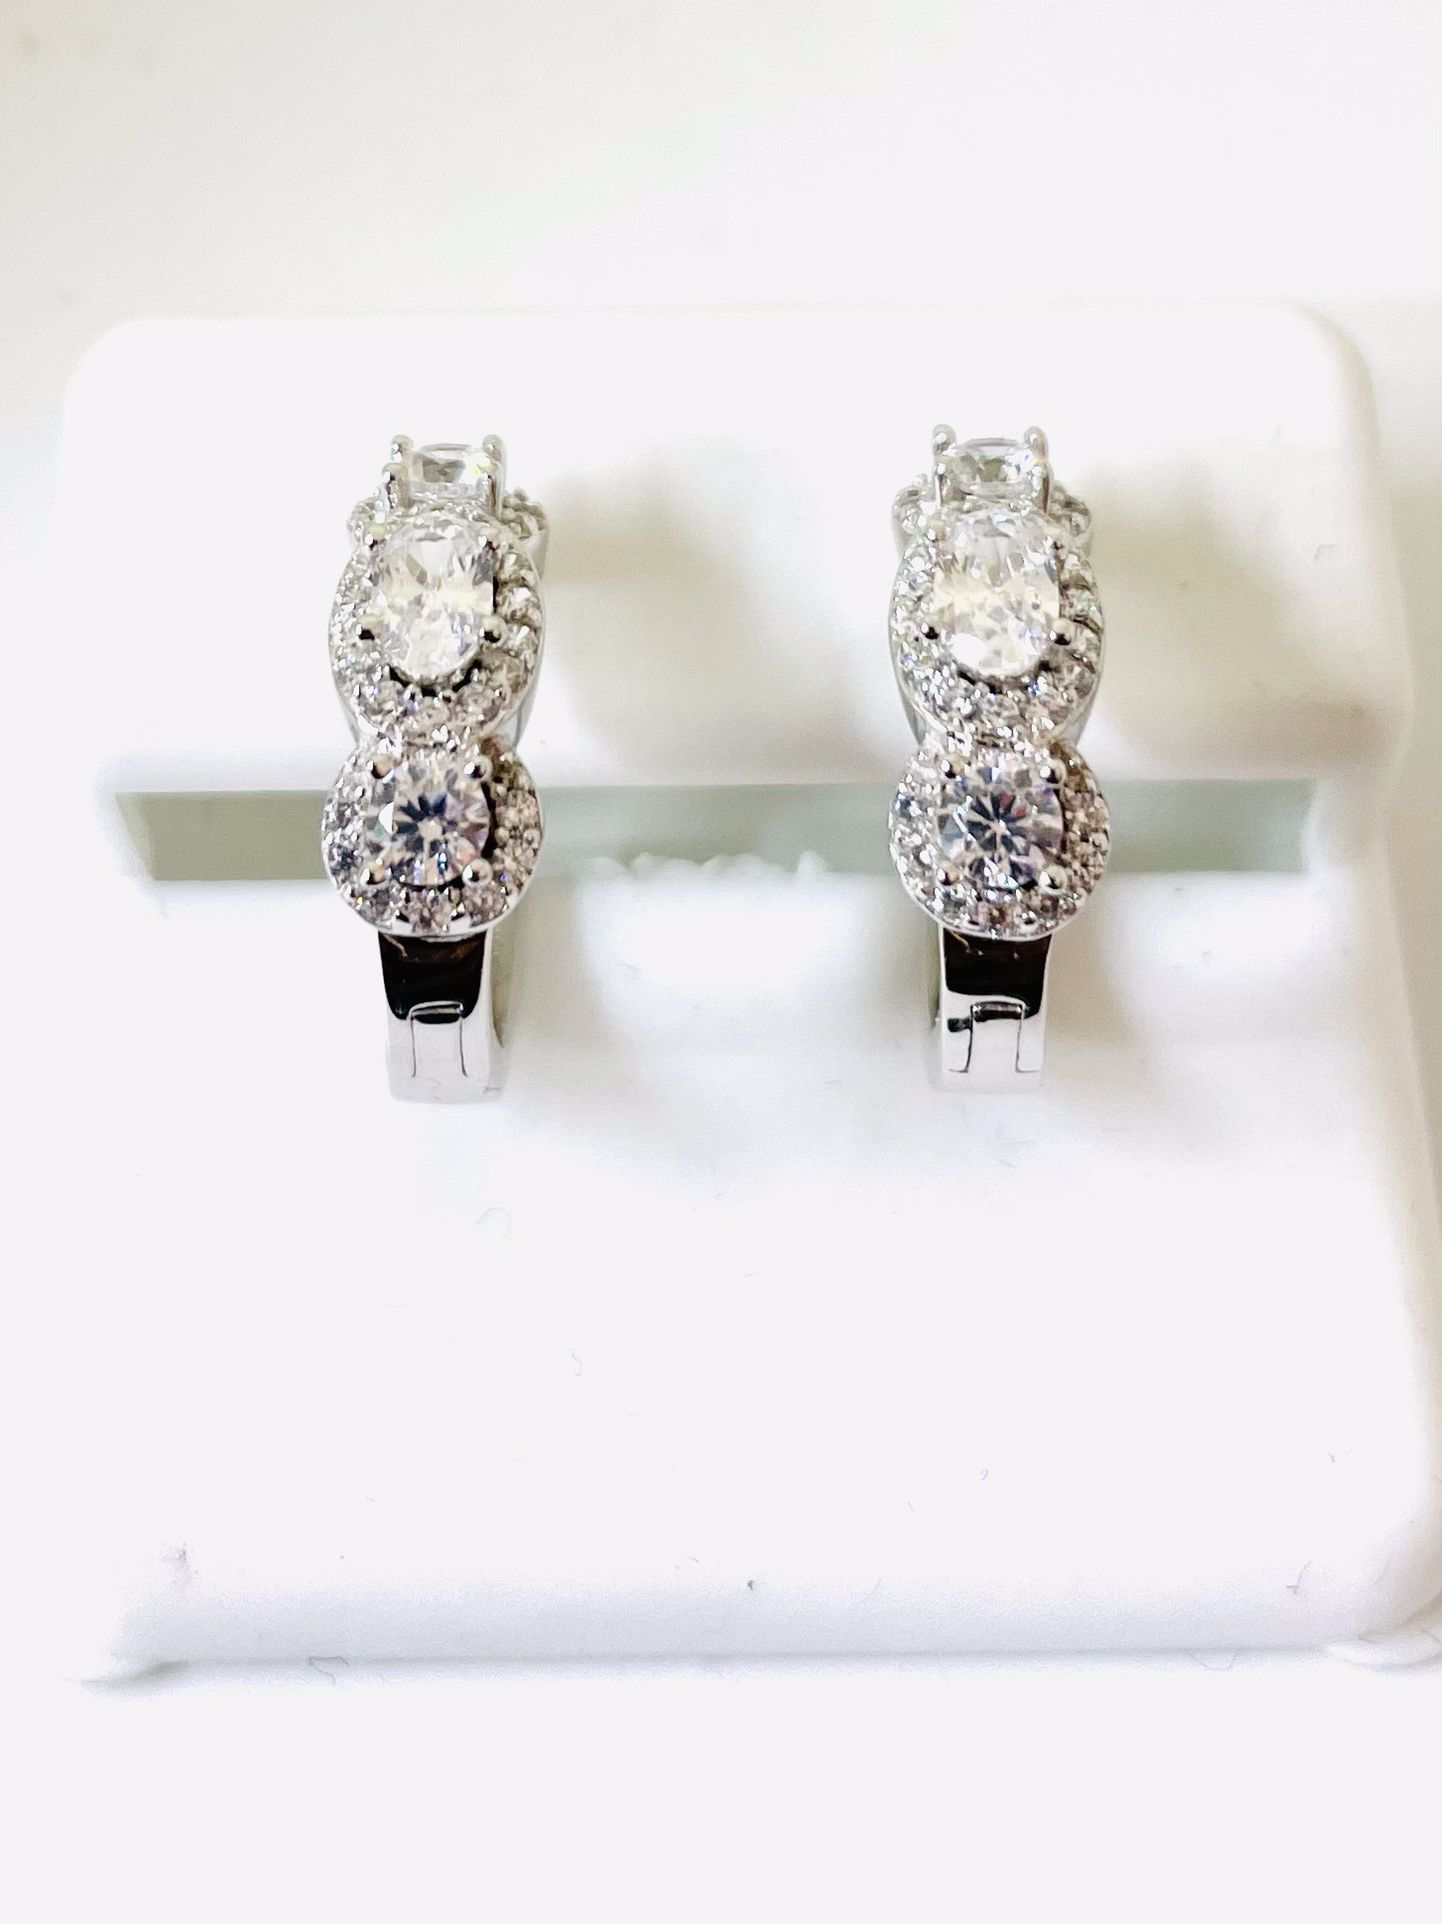 925 STERLING SILVER AND CZ EARRINGS AVAILABLE ON SPECIAL SALE